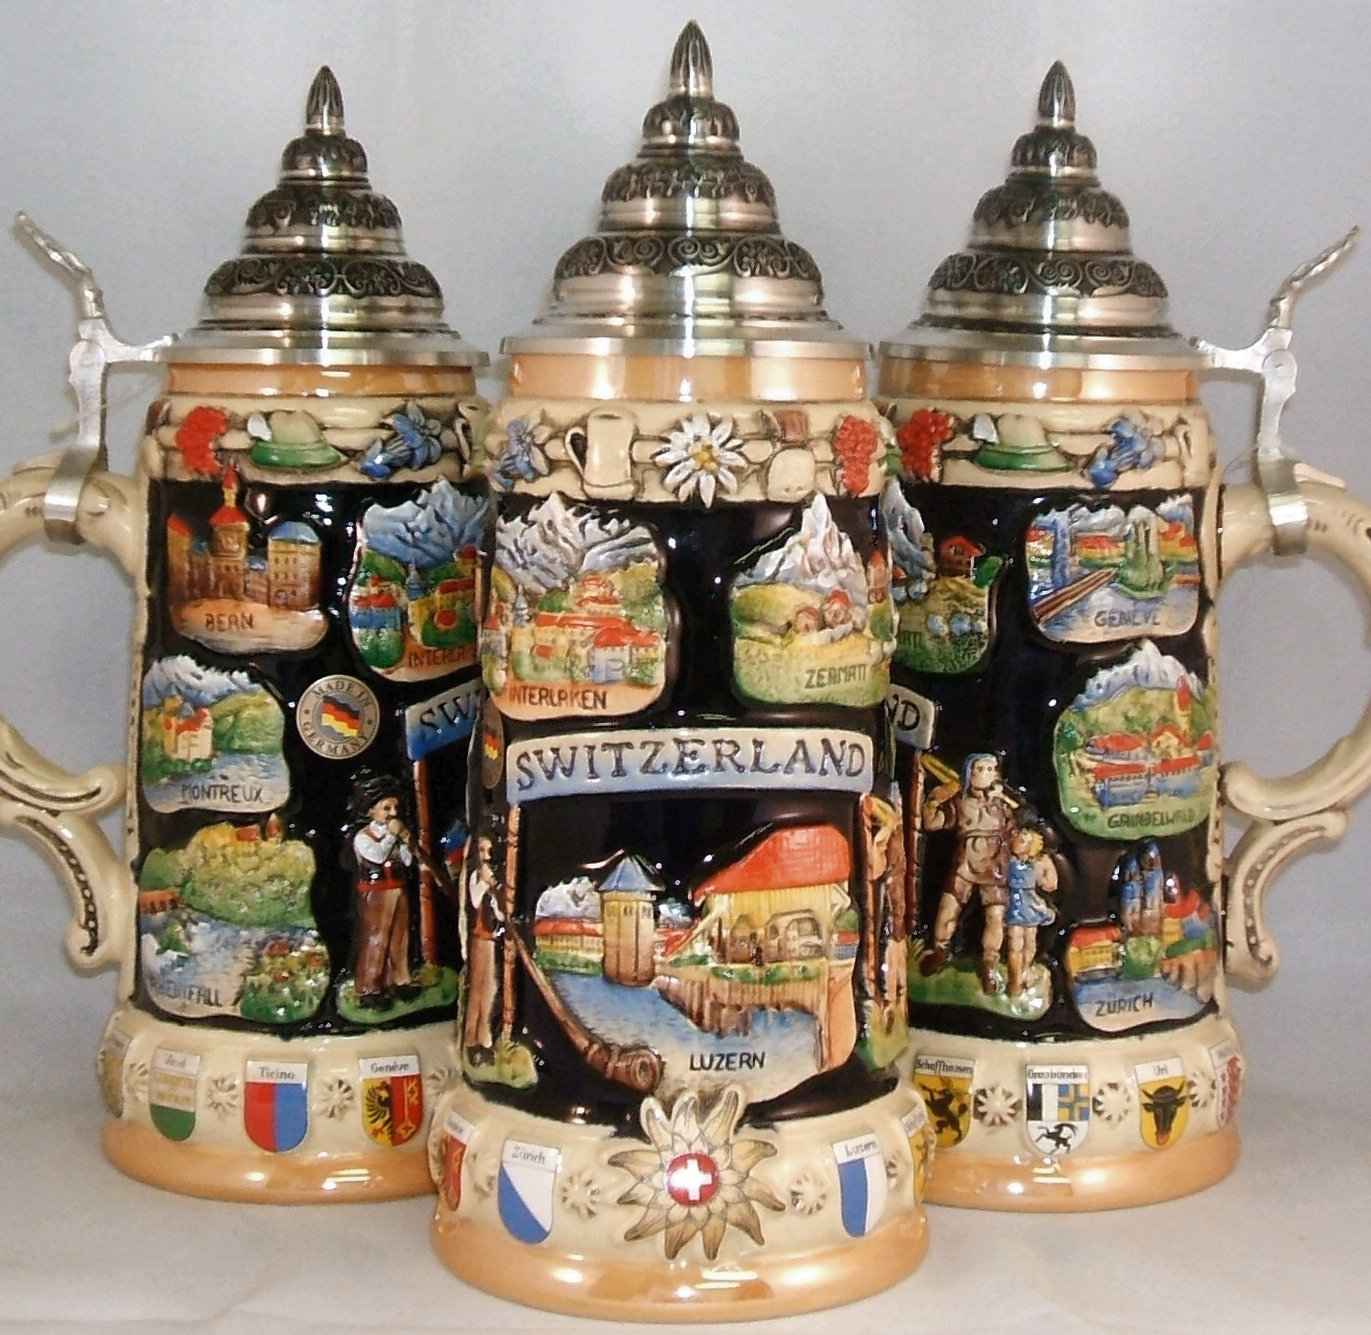 Switzerland Panorama LE German Beer Stein .75L